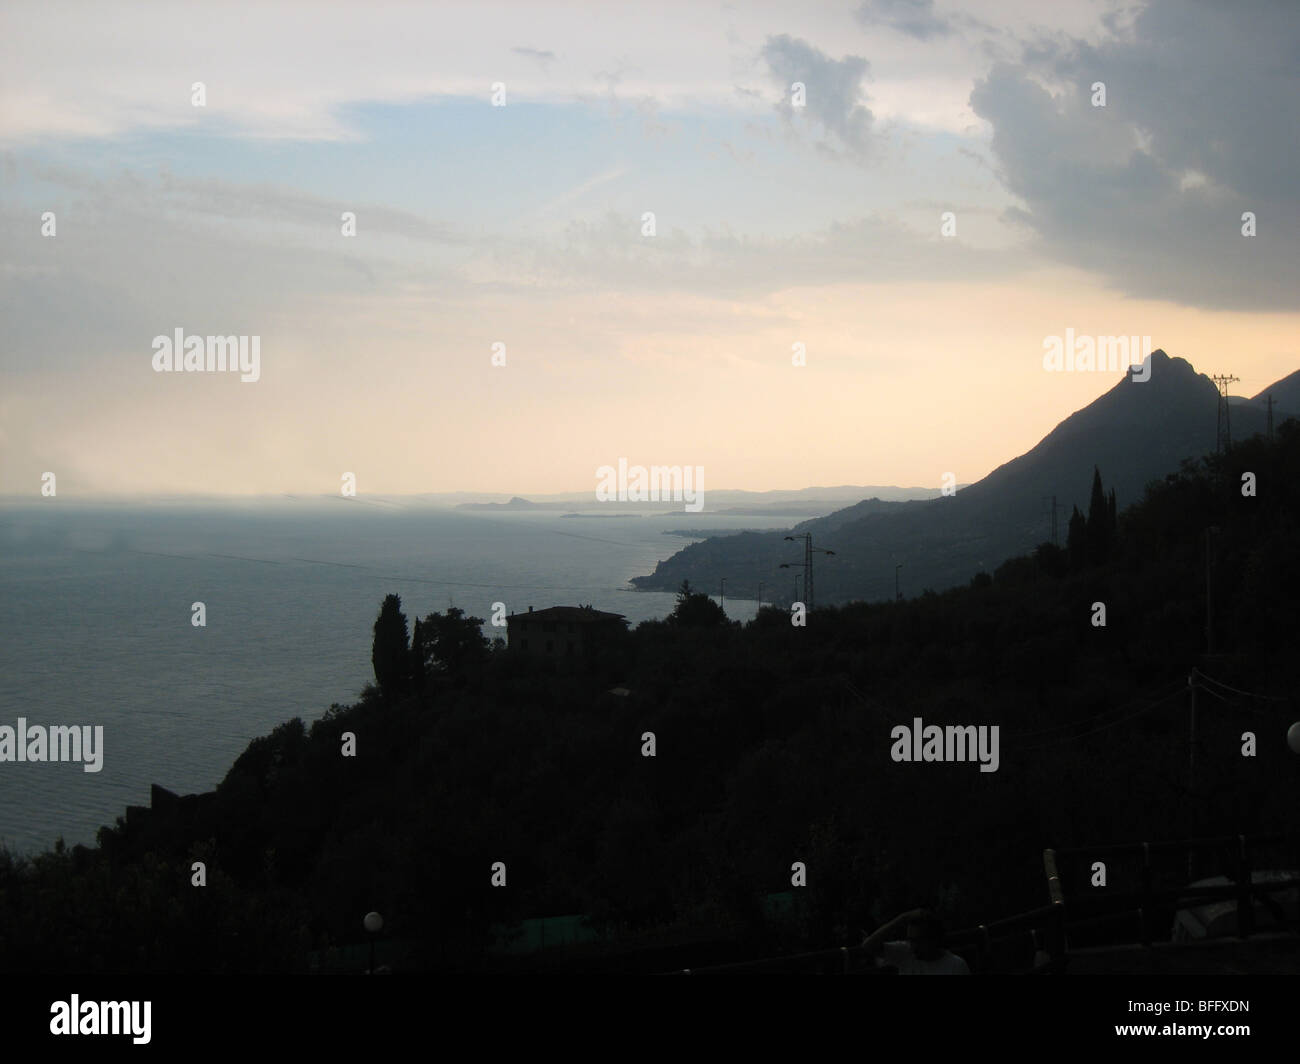 Evening view looking south on Lake Garda Italy after a summer storm - Stock Image